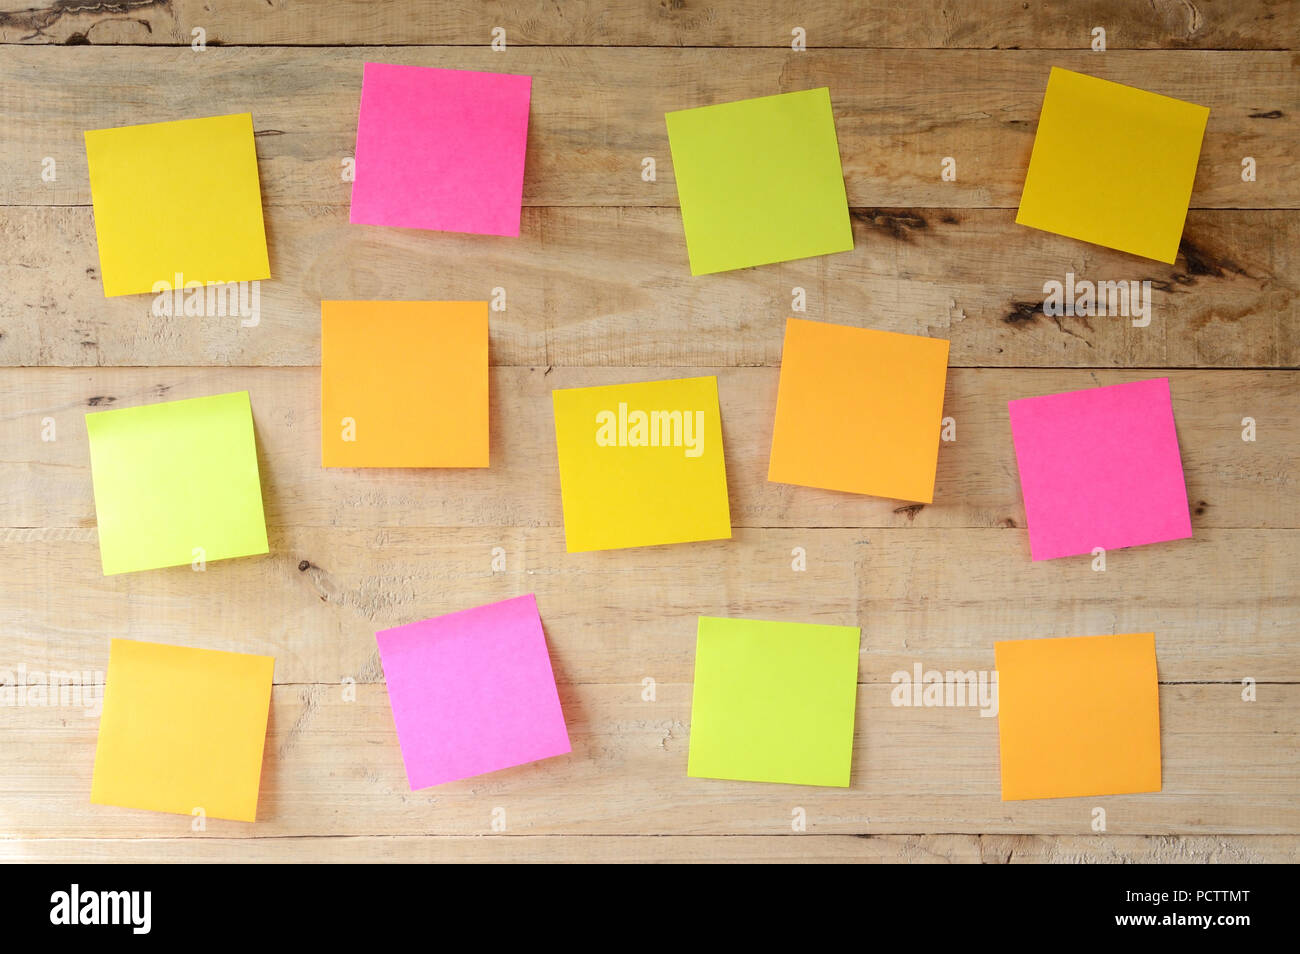 7c1a8e112ca61 Post It Note Photos & Post It Note Images - Page 7 - Alamy